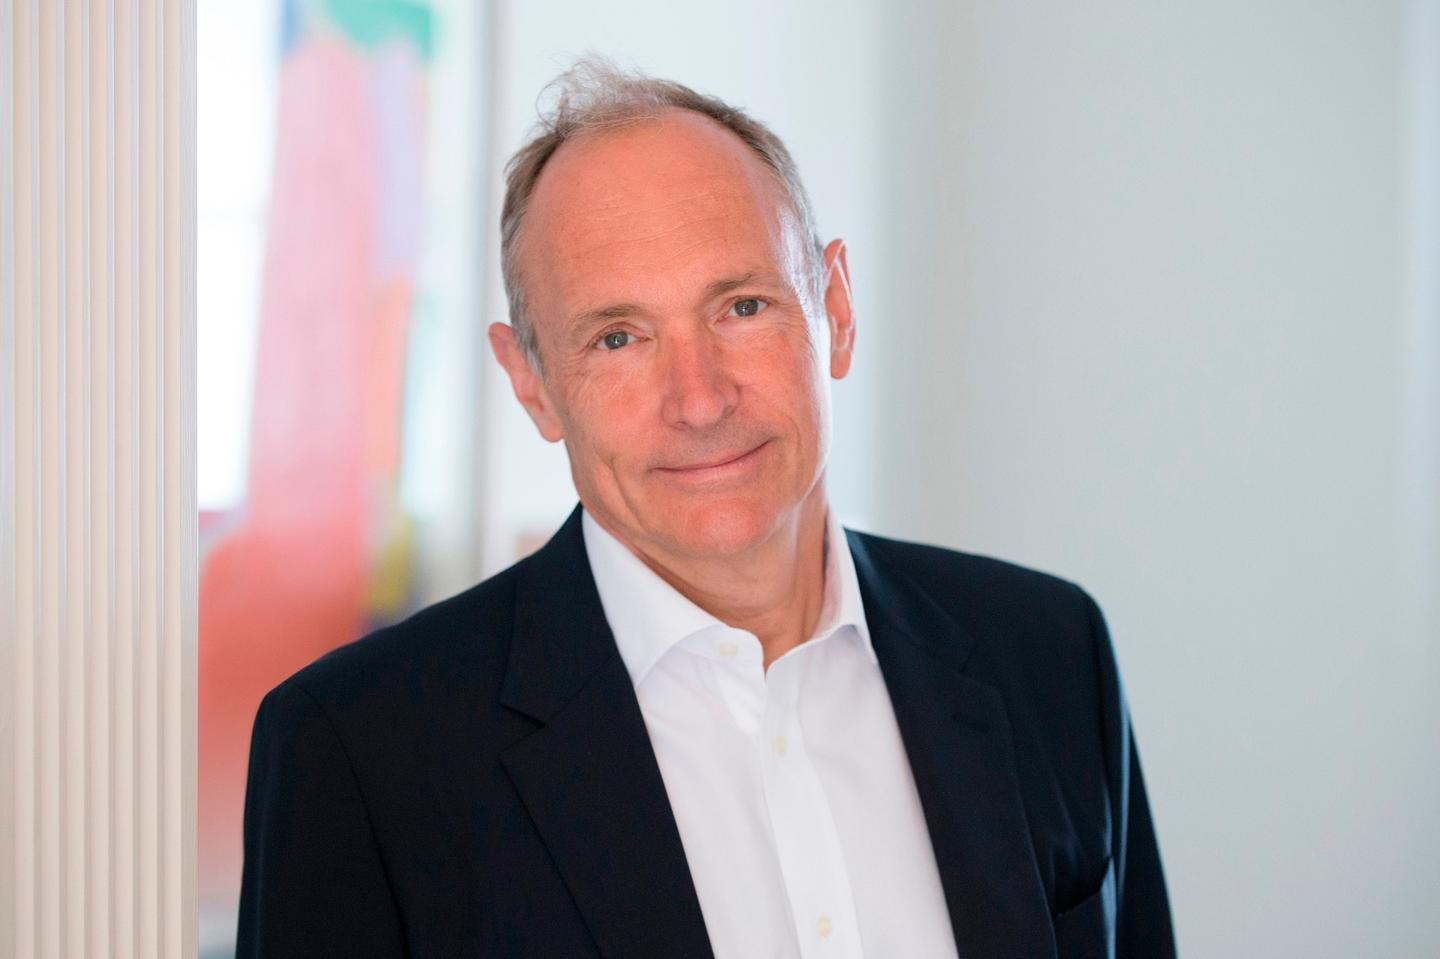 Tim Berners-Lee, father of the Internet as we know it, has been honored with the million-dollar Turing Award